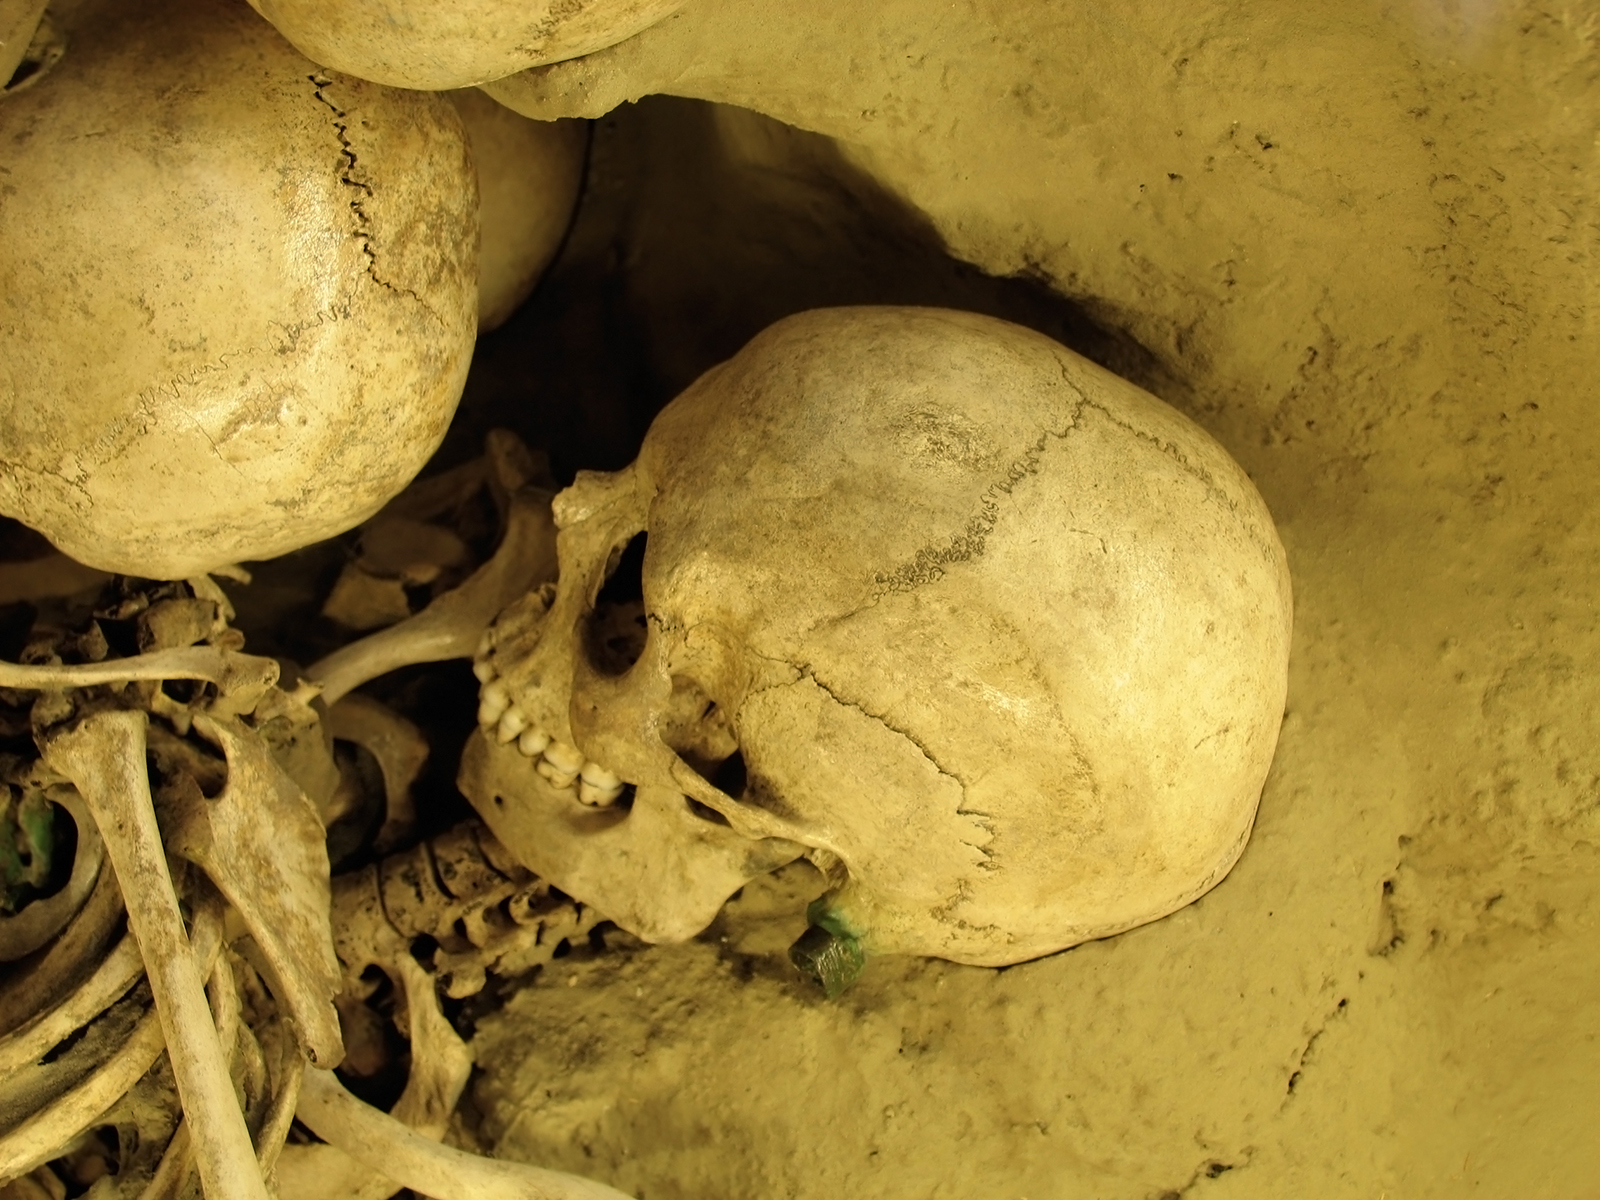 Rabbit Burrowing Churns Claims about Neanderthal Burials